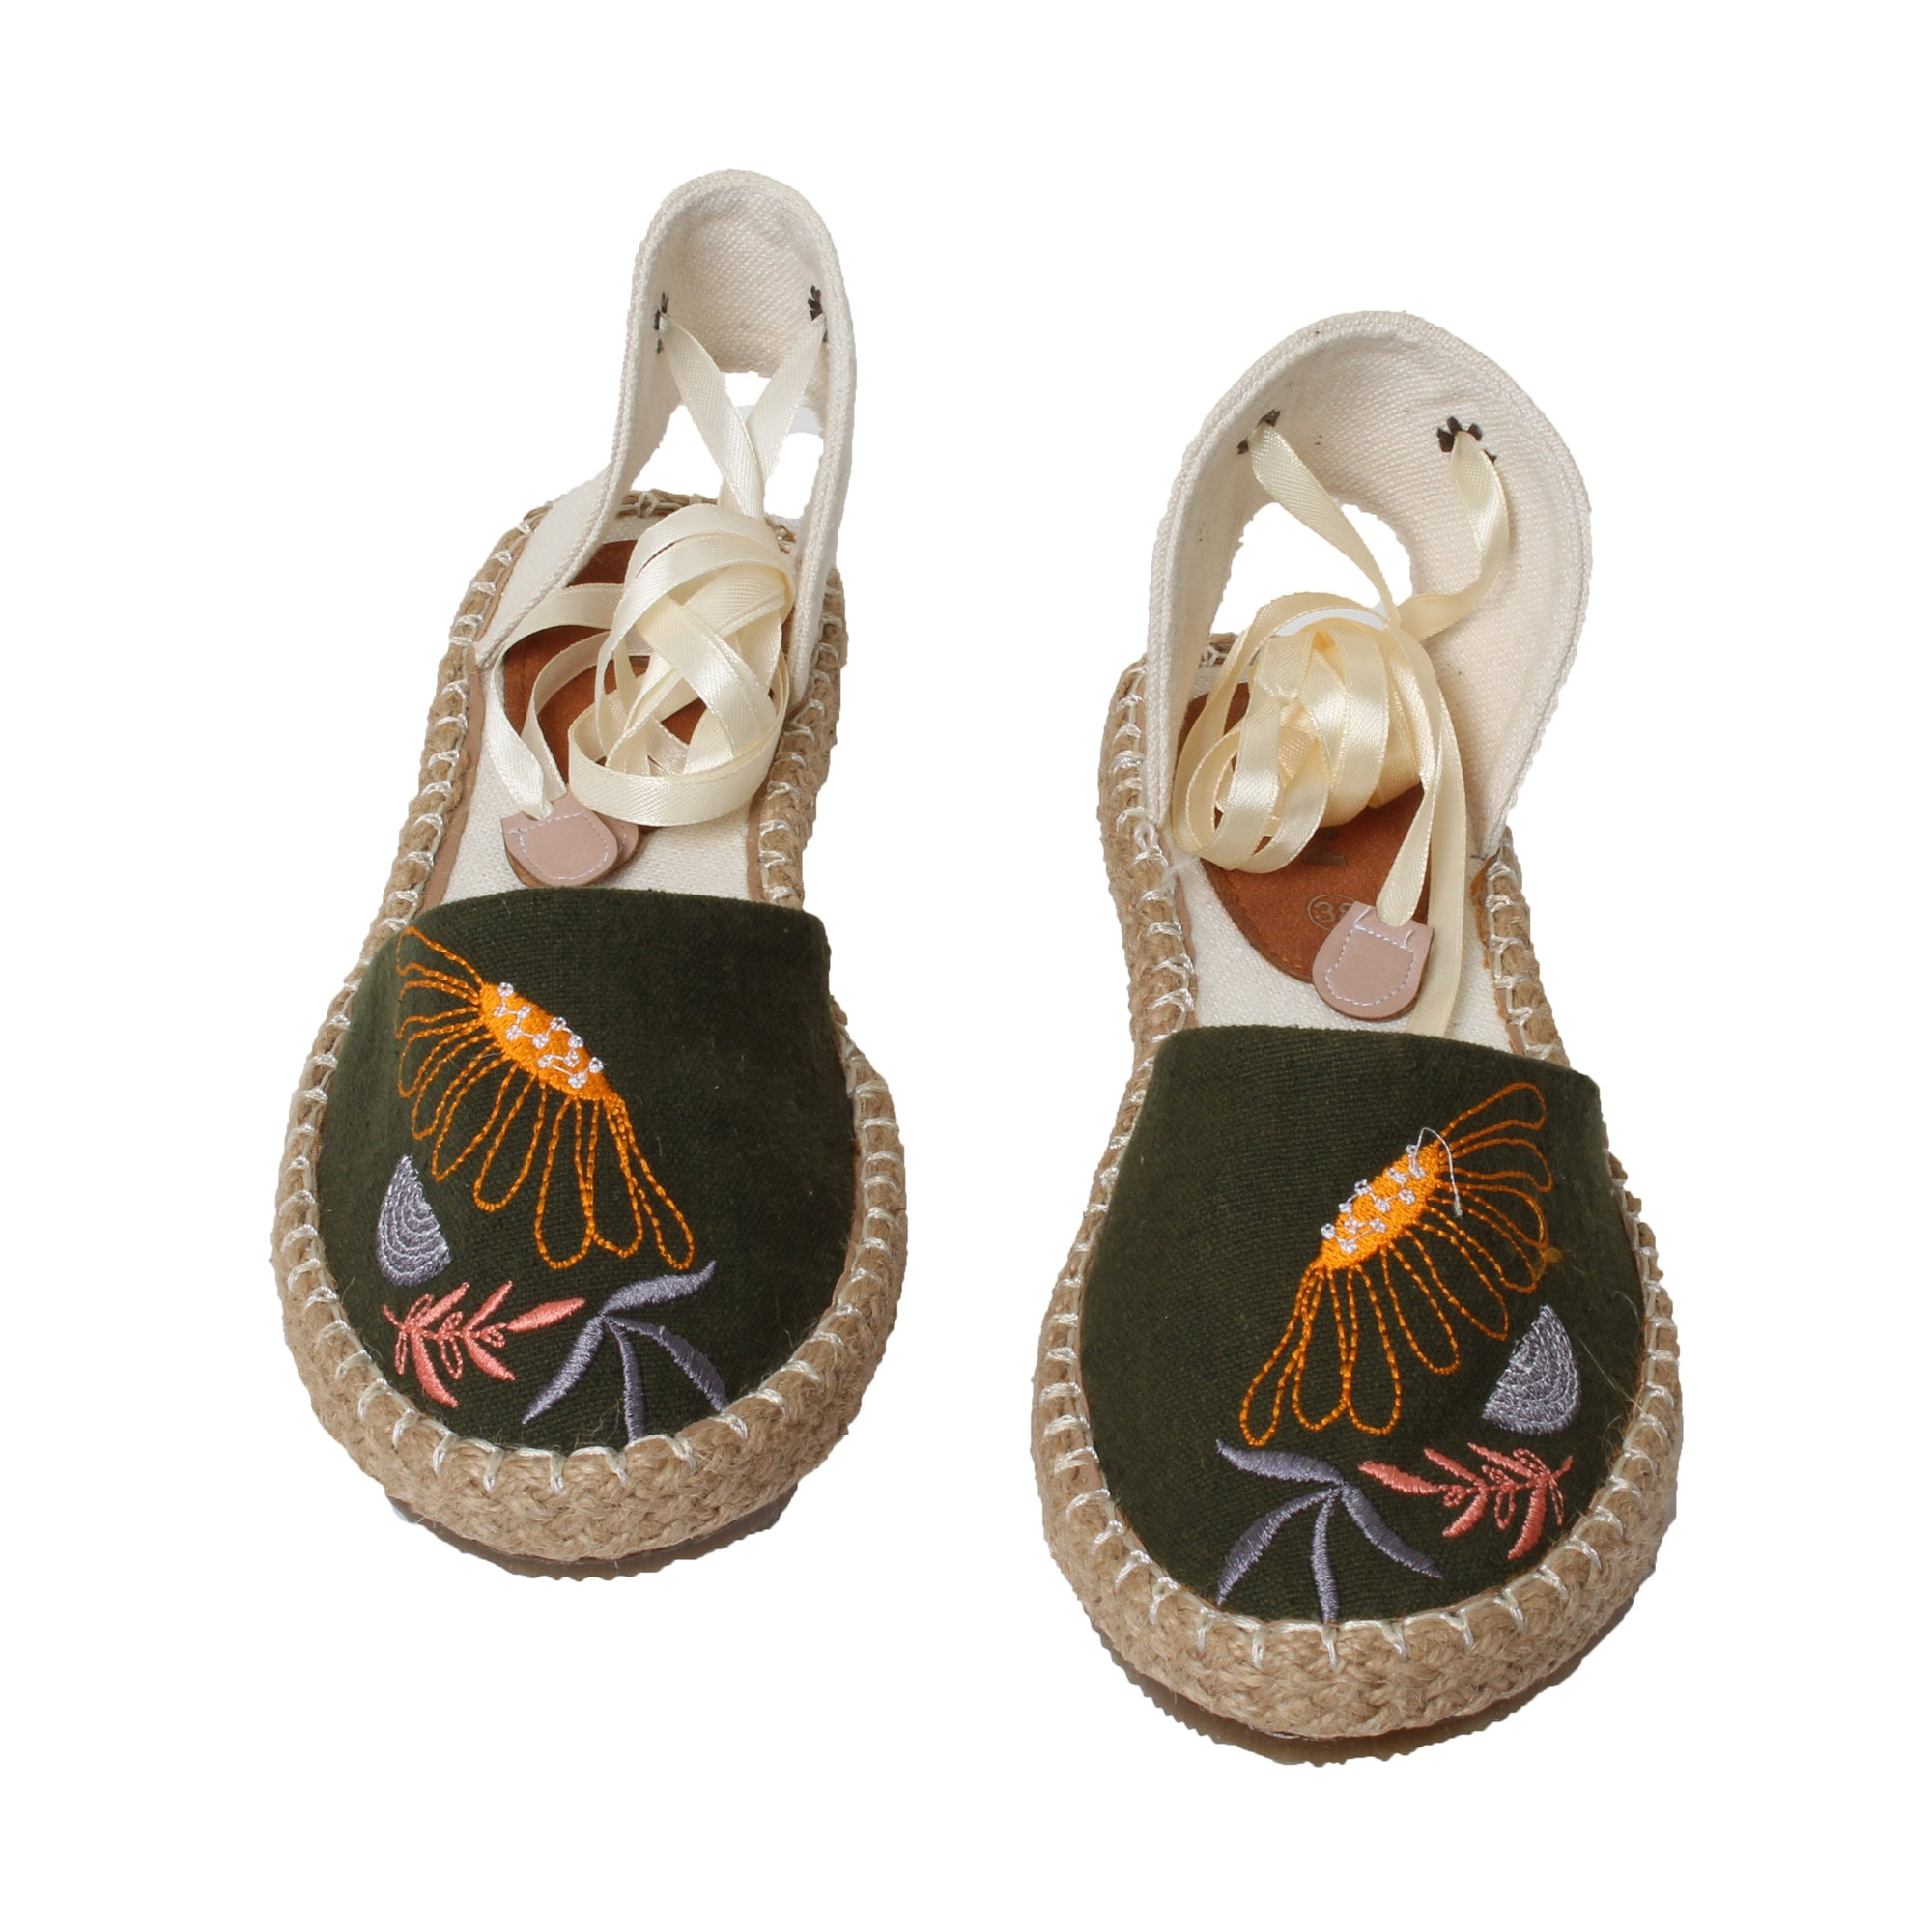 Tiptoe Sandals Sunflower